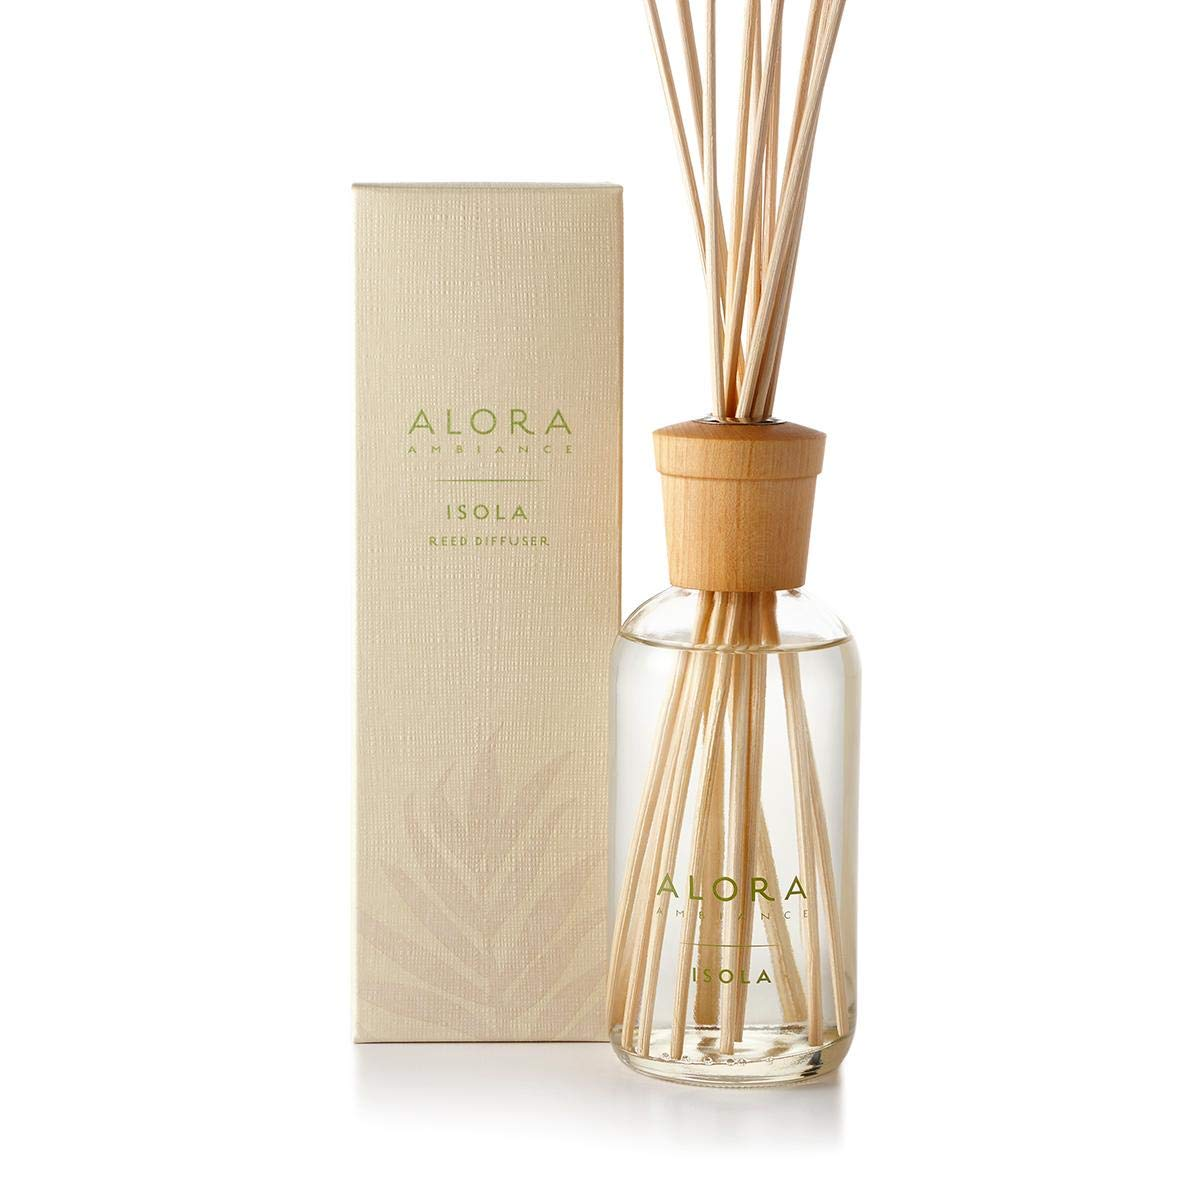 Alora Ambiance Isola 8 oz Reed Diffuser | Long-Lasting Light & Floral Fragrance | Beautifully Designed for Any Space